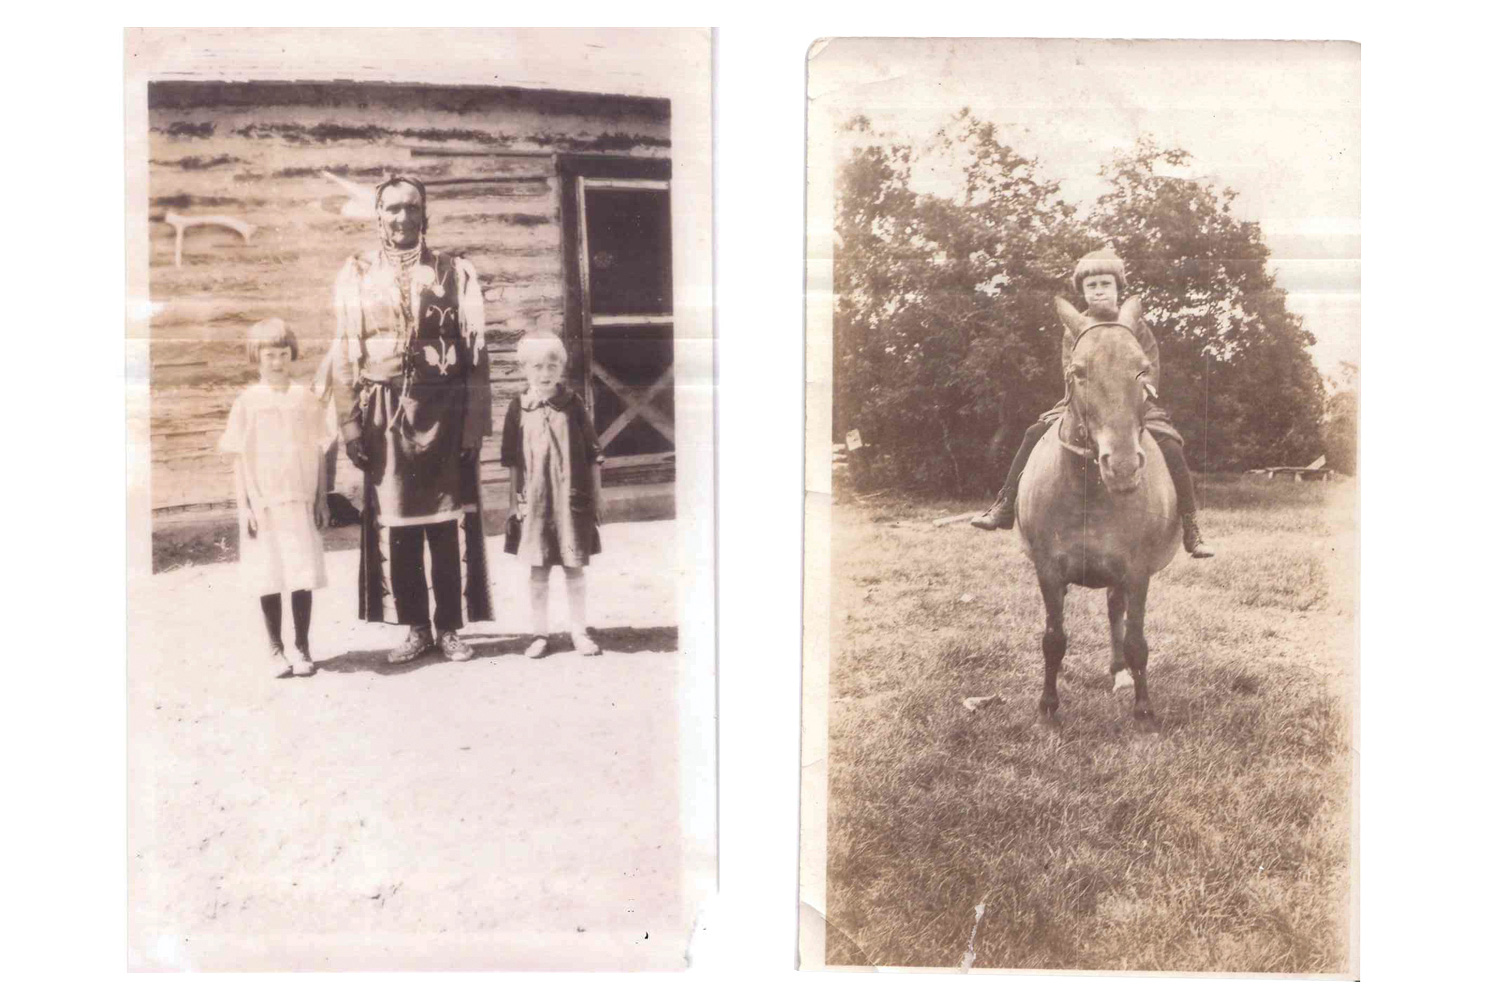 reconciling family narrative textbook history in montana s  mary ahern her brother mickey and cold wind during the 1920s left and on her horse right